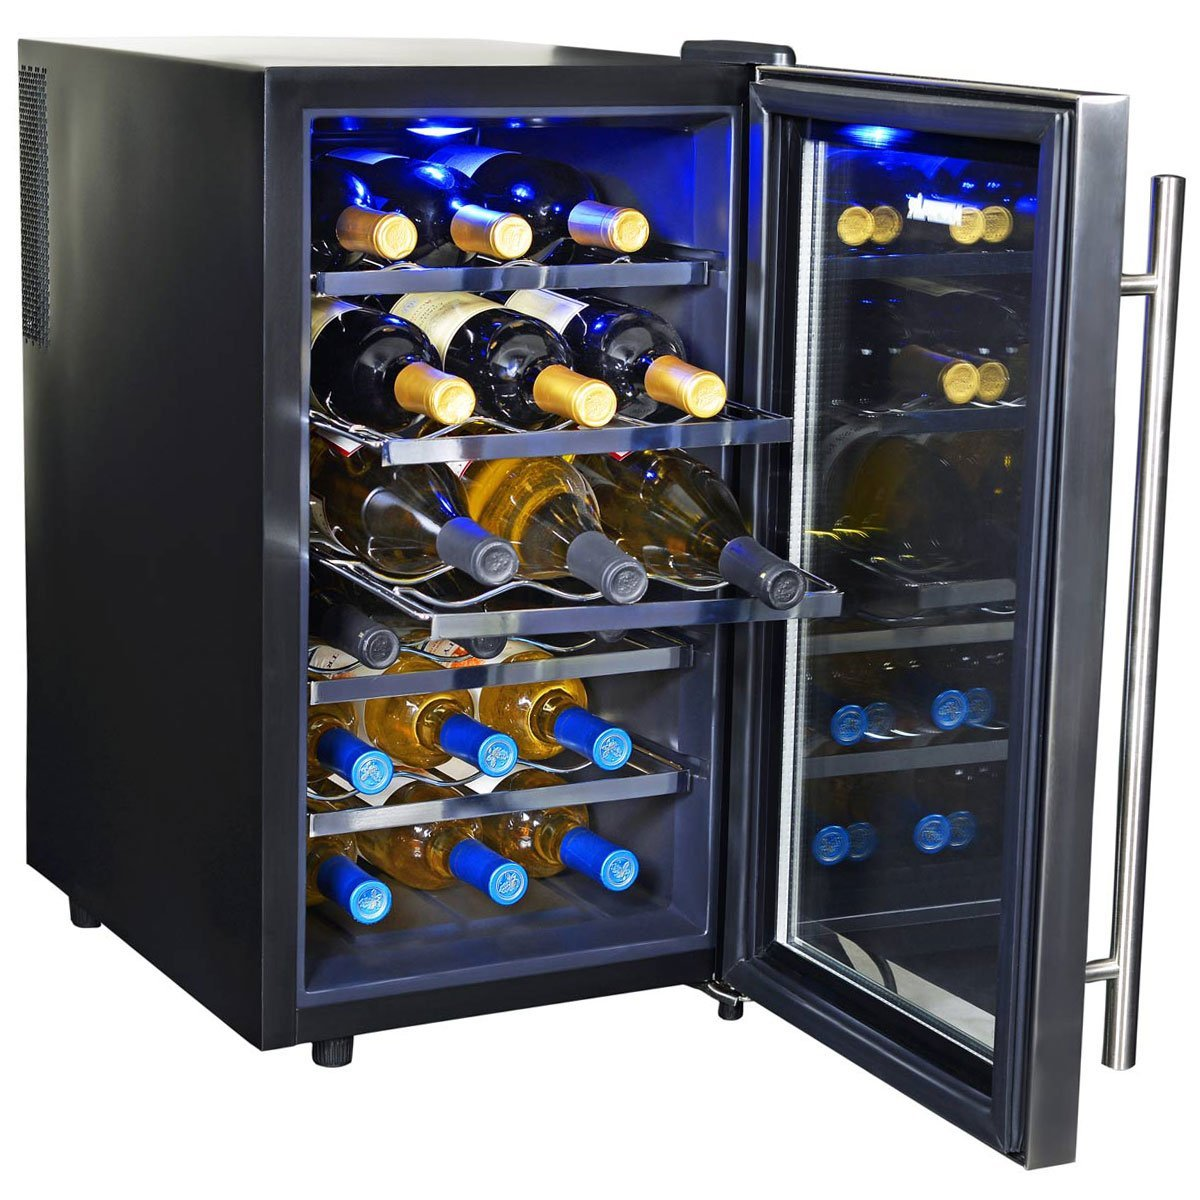 18 Bottle Wine Refrigerator How To Make Homemade Wine